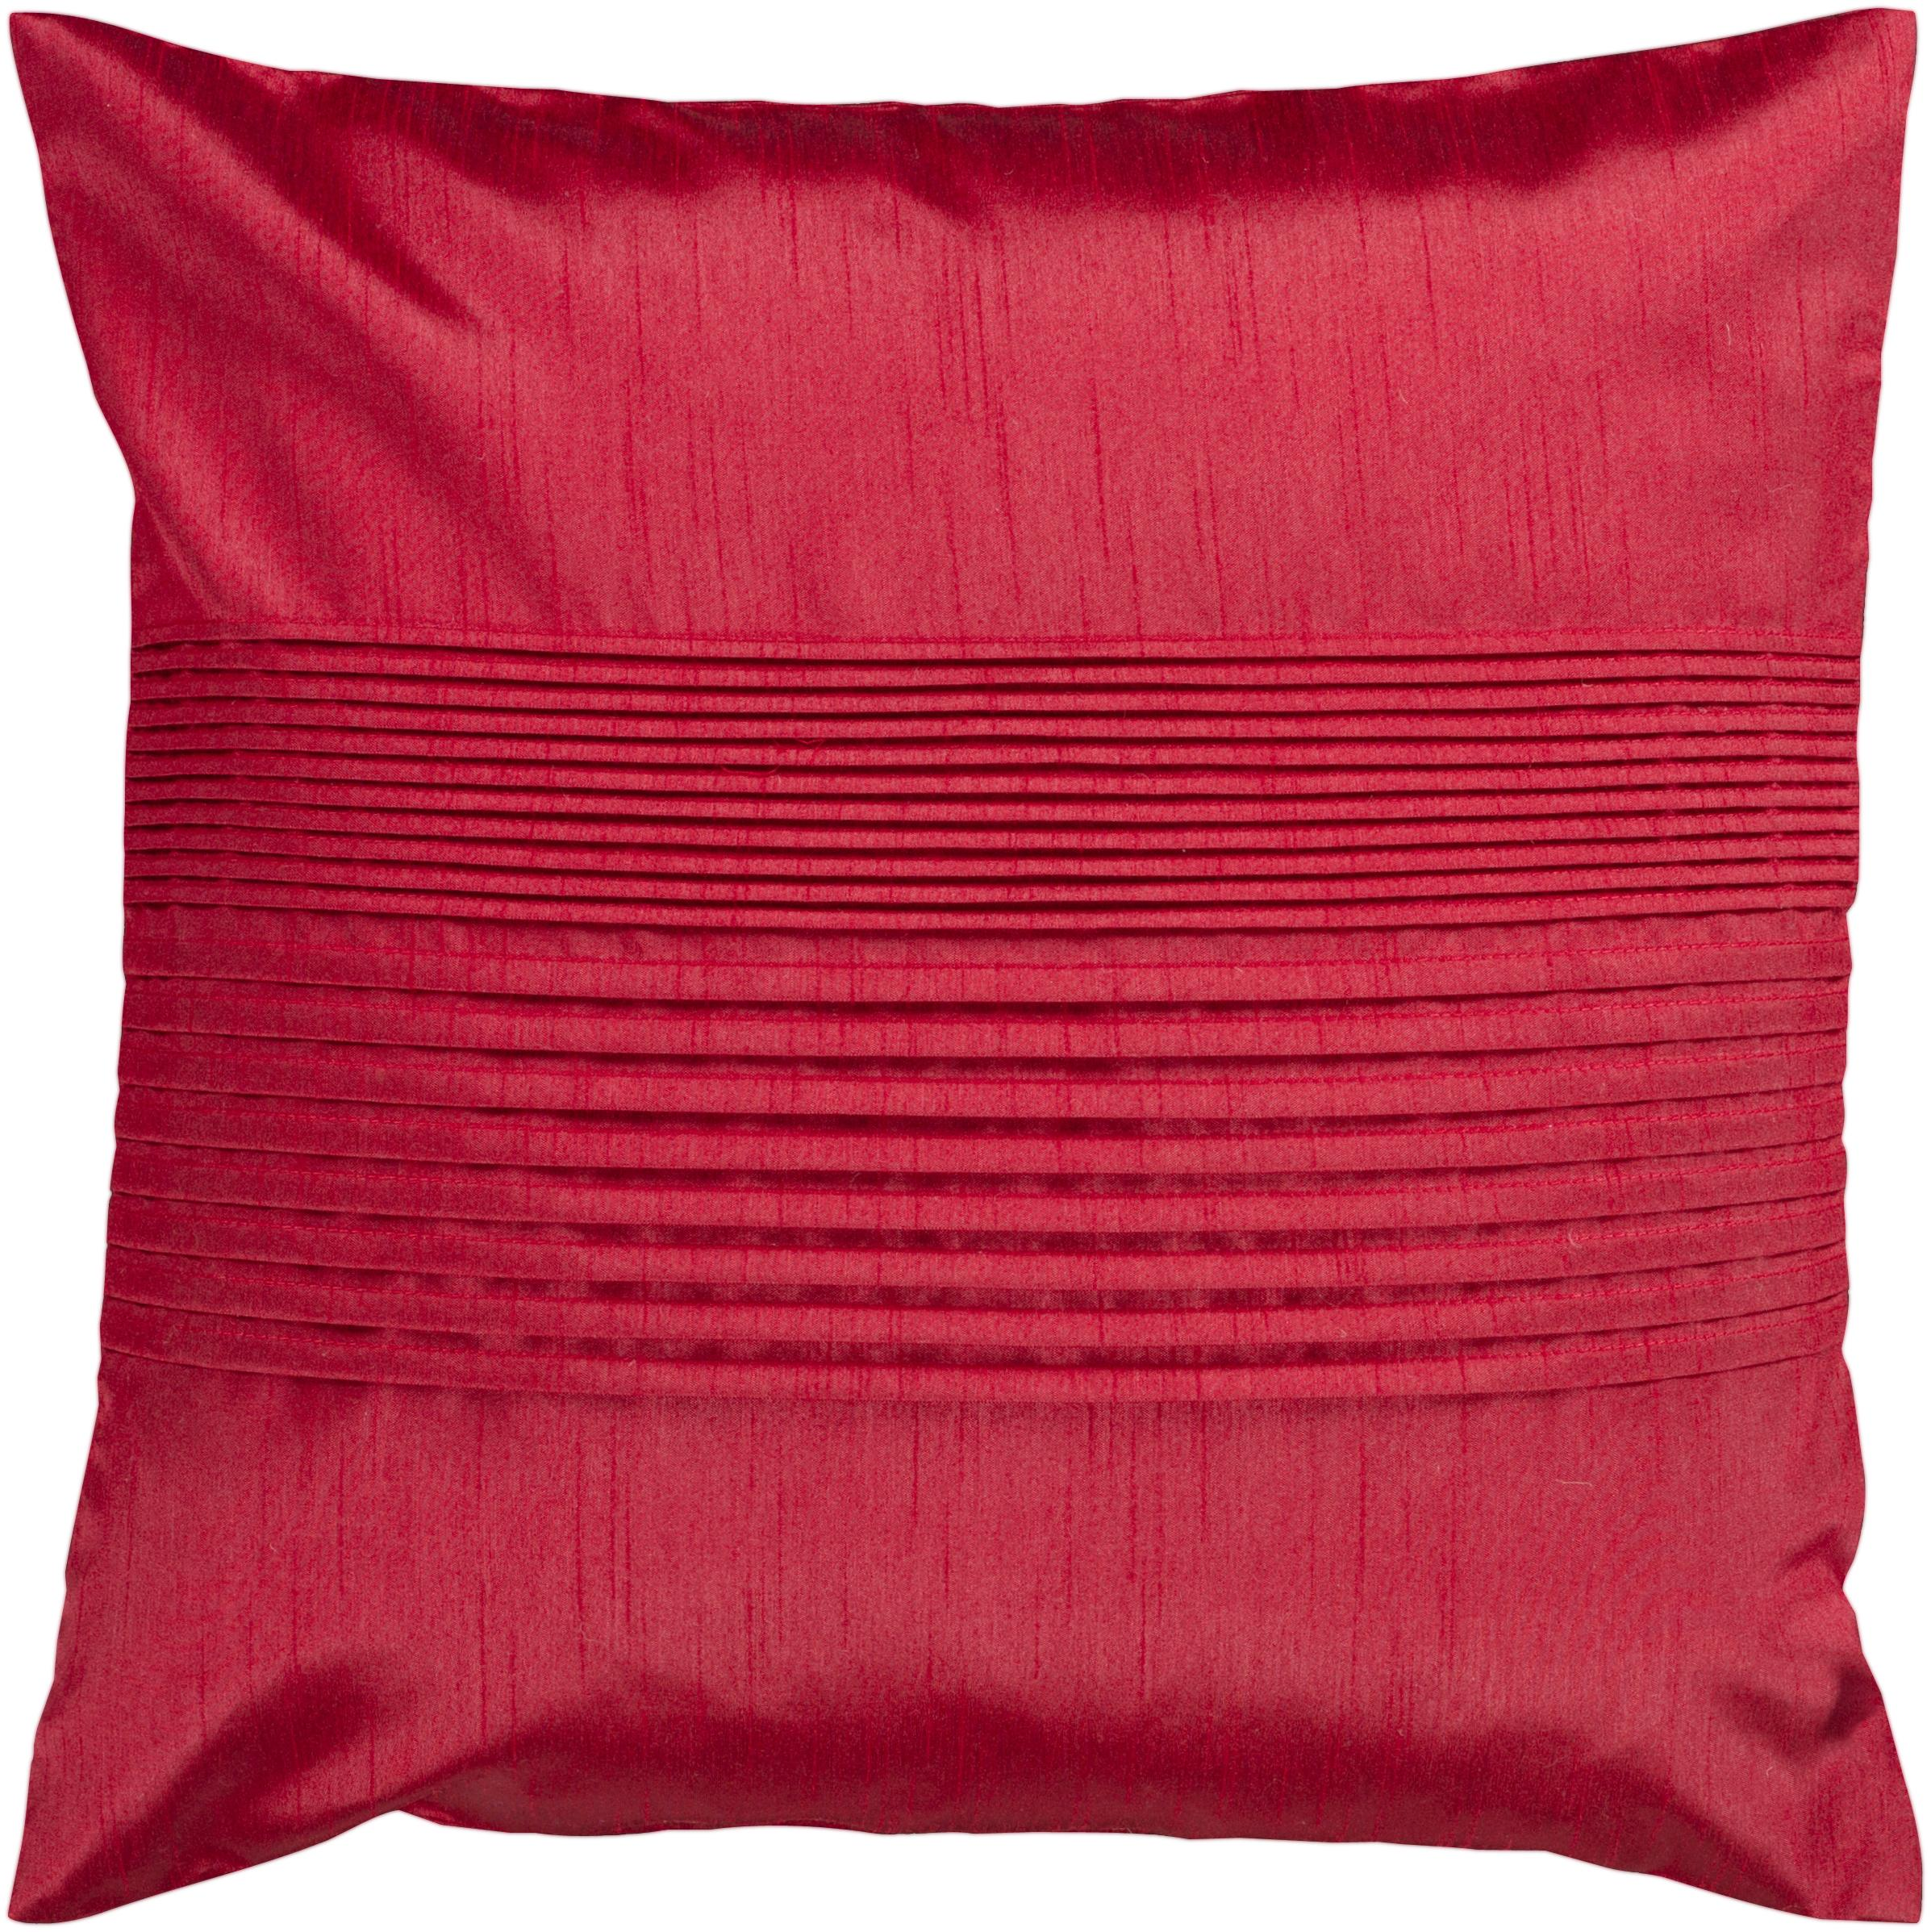 "Surya Pillows 18"" x 18"" Pillow - Item Number: HH025-1818P"